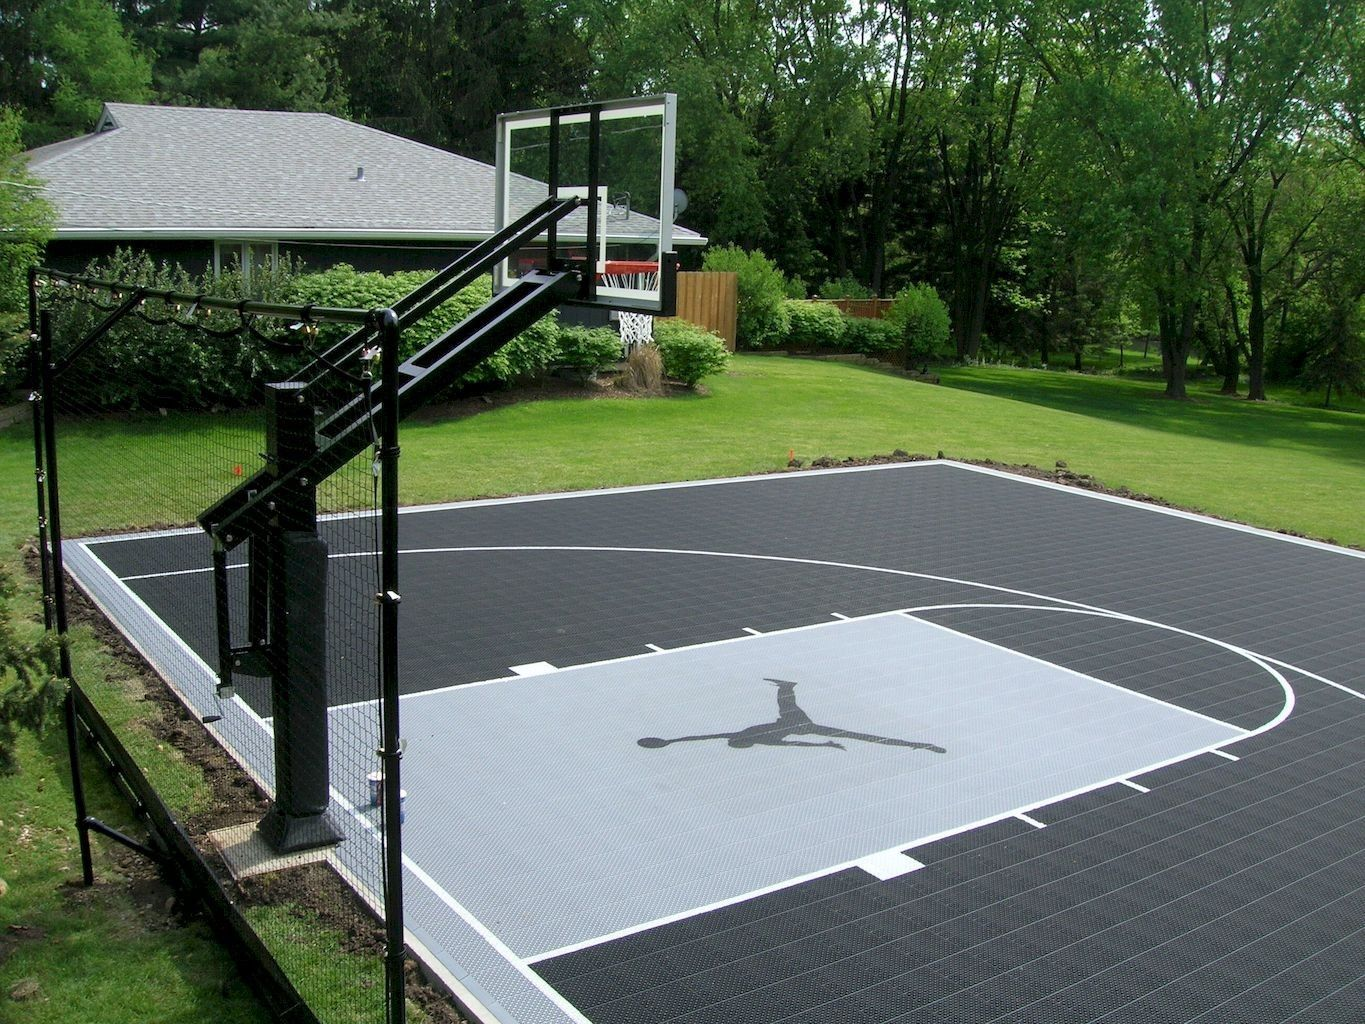 22 Genius Concepts Of How To Makeover Backyard Sport Court Ideas Simphome Basketball Court Backyard Home Basketball Court Backyard Basketball